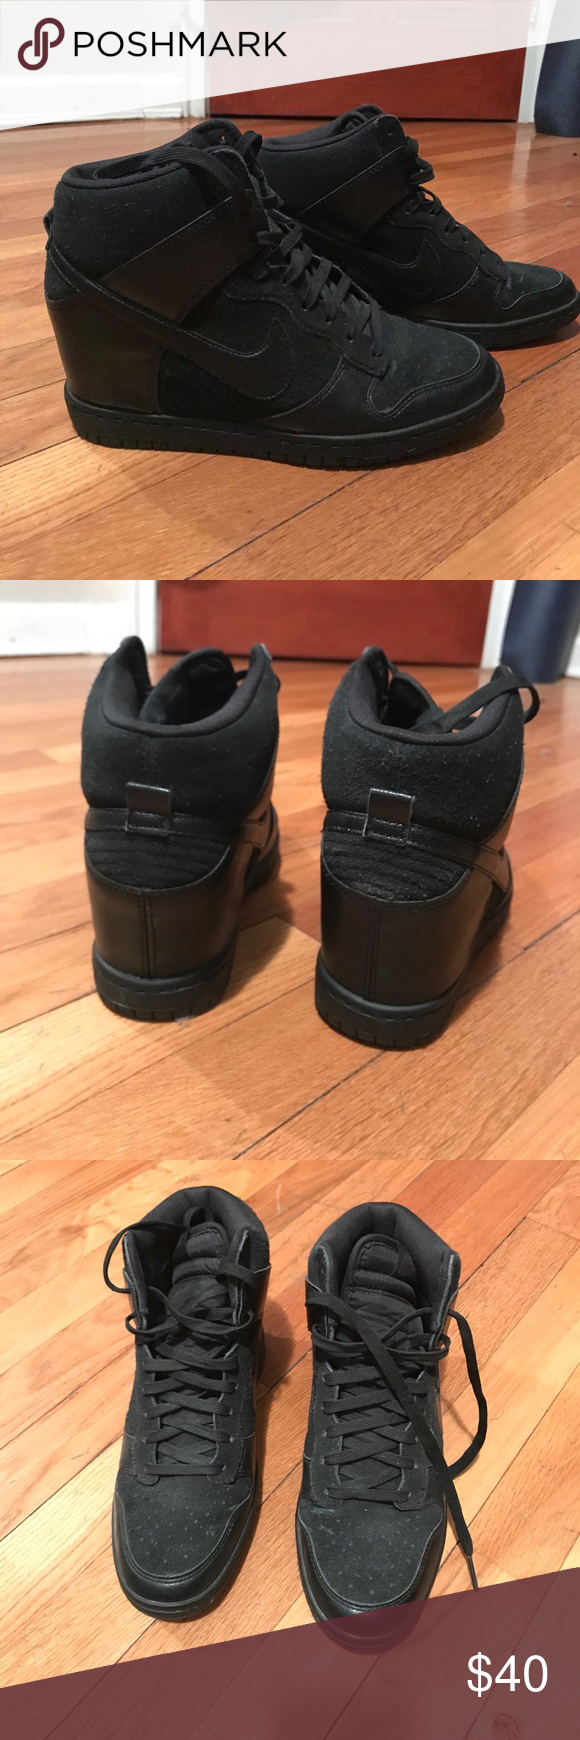 Nike Wedge Heel Sneaker Great condition, only worn a couple times Nike Shoes Sneakers